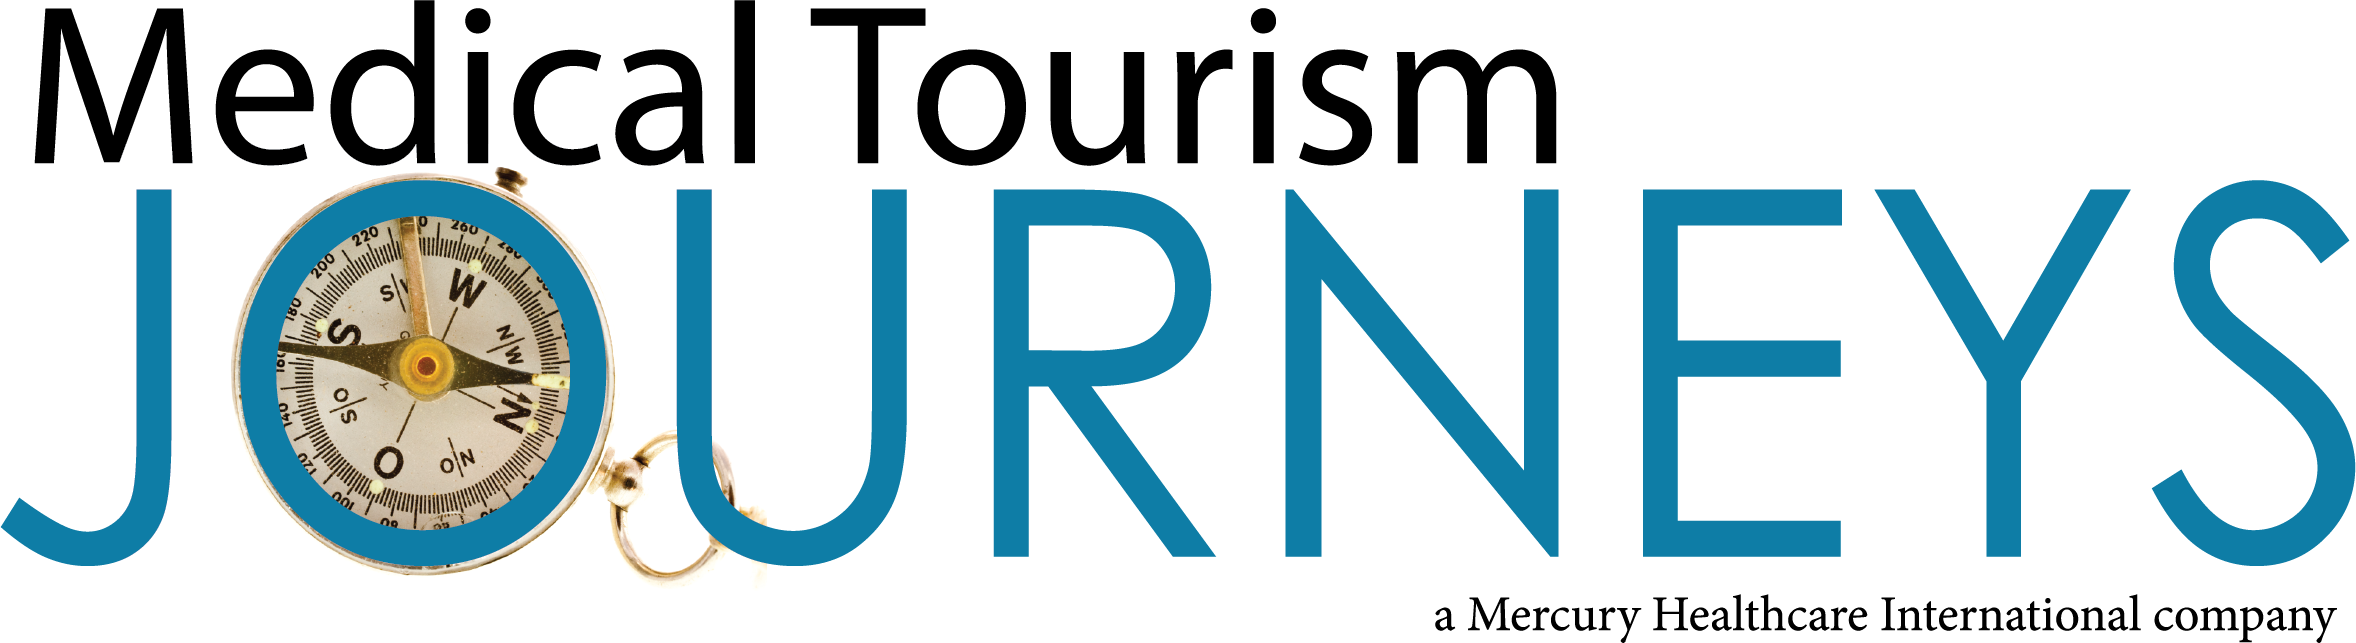 medical tourism journeys logo